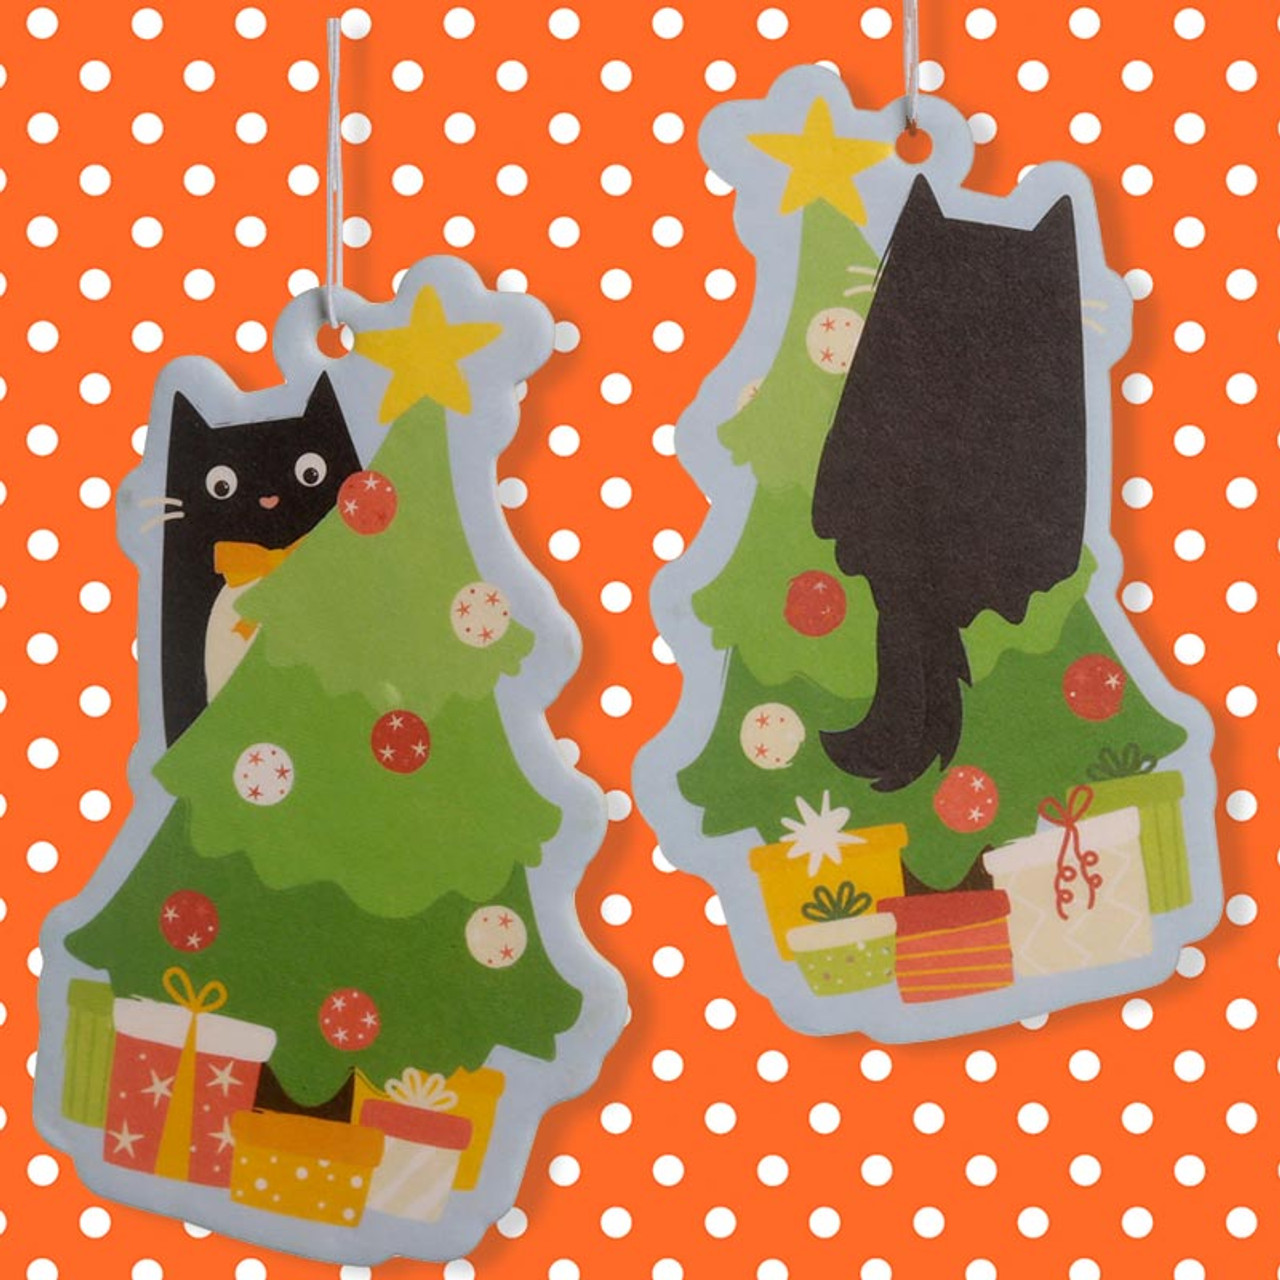 Festive Feline Christmas Tree Air Freshener